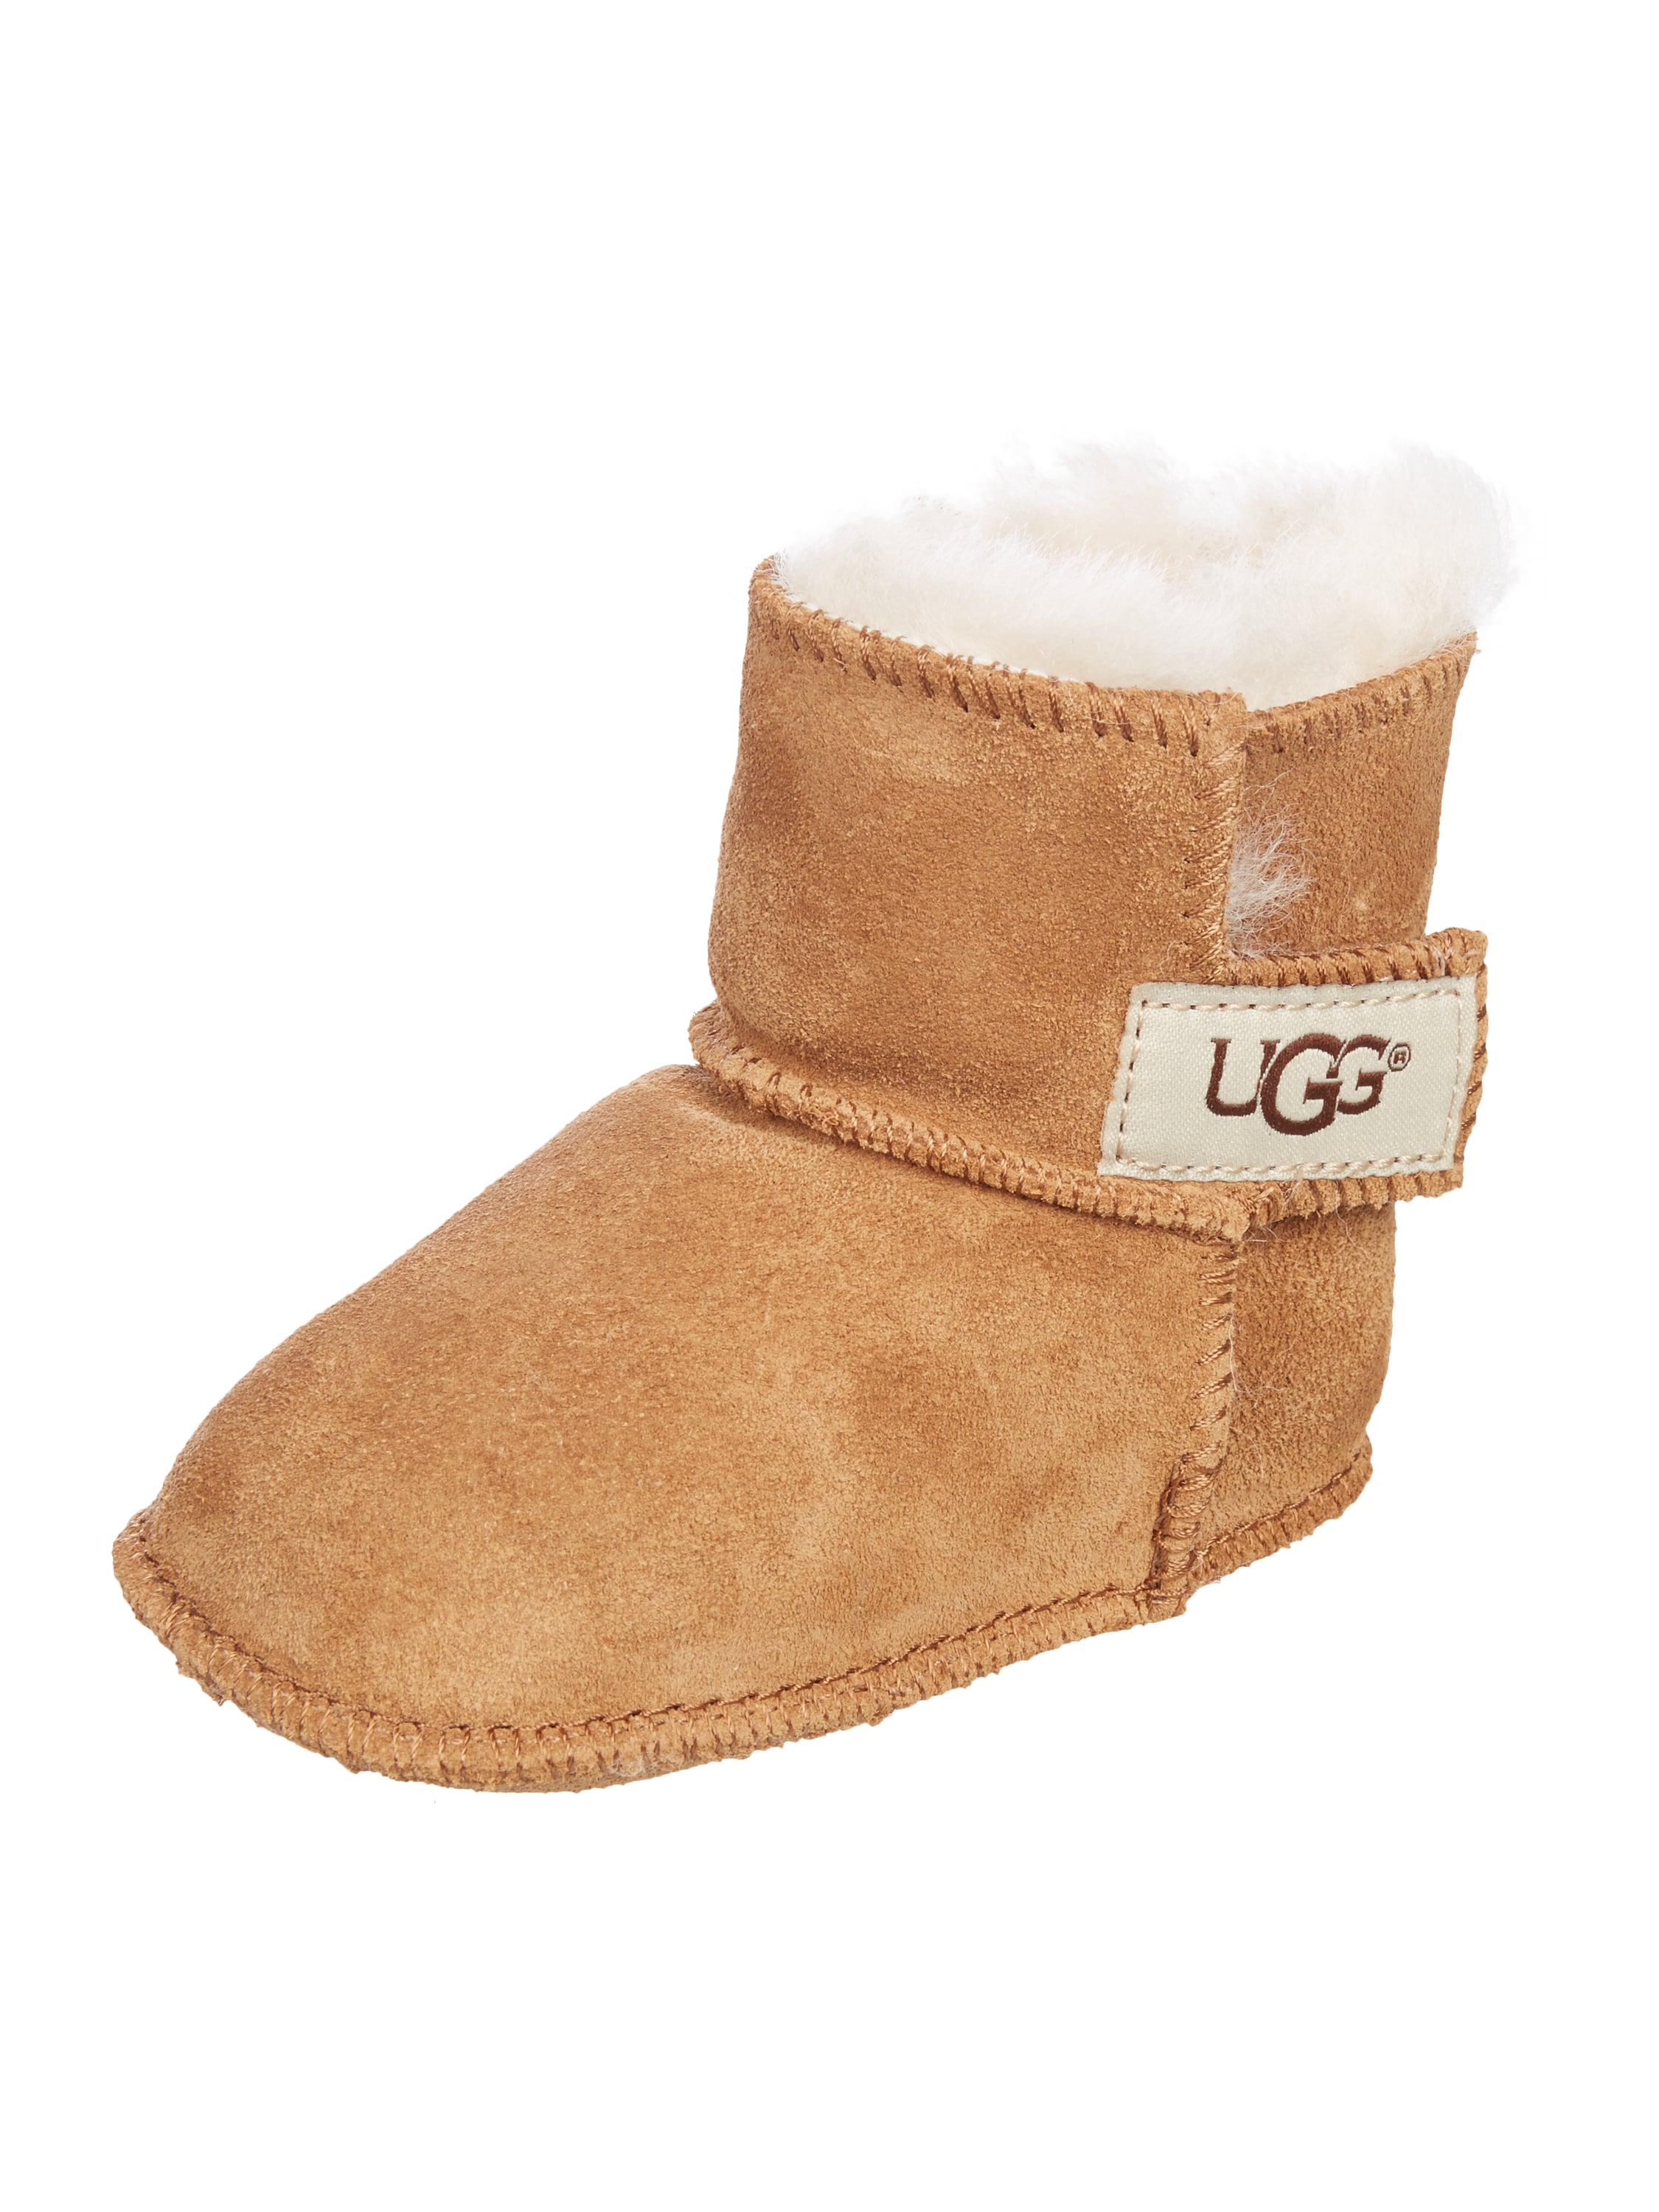 ugg sale hong kong